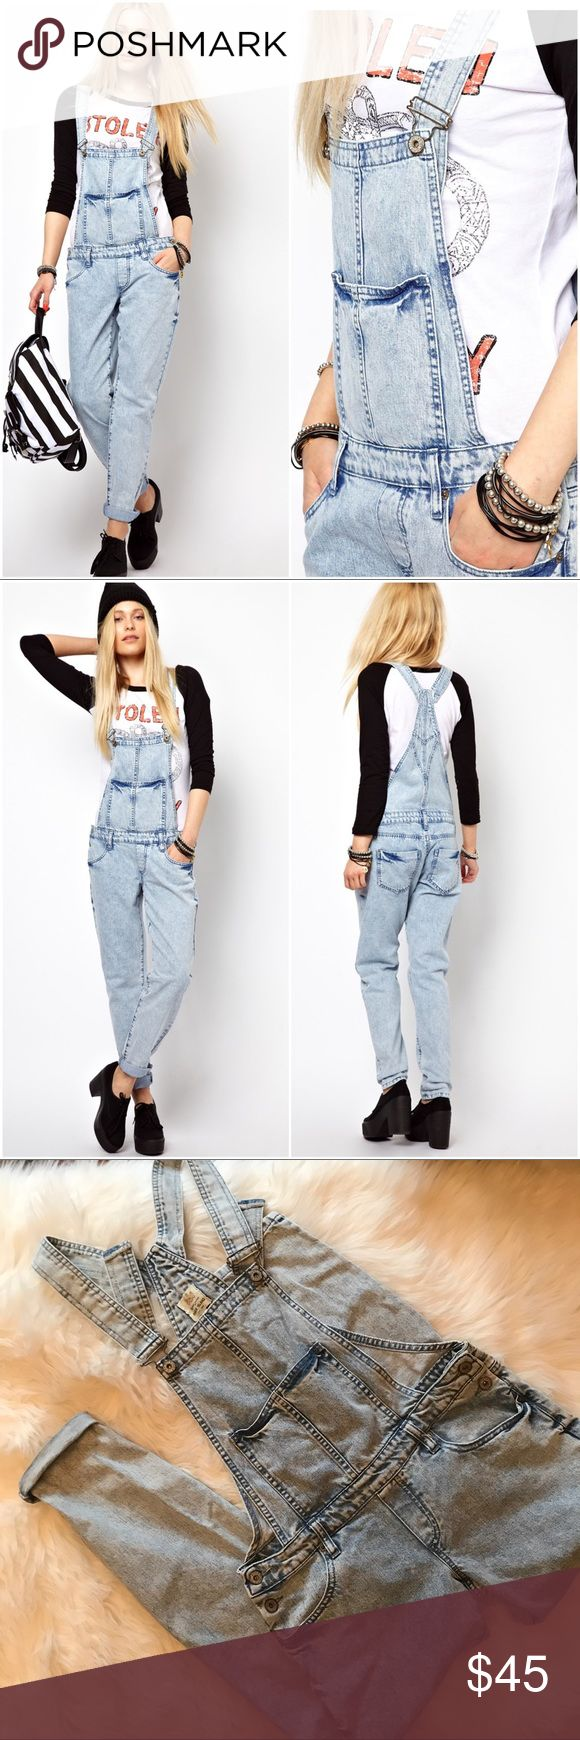 River Island Blue Acid Wash Dungarees Overalls  8 In excellent condition coolest overalls for this season. From ASOS. River Island dungarees / overalls in light acid wash. Size 8. River Island Jeans Overalls